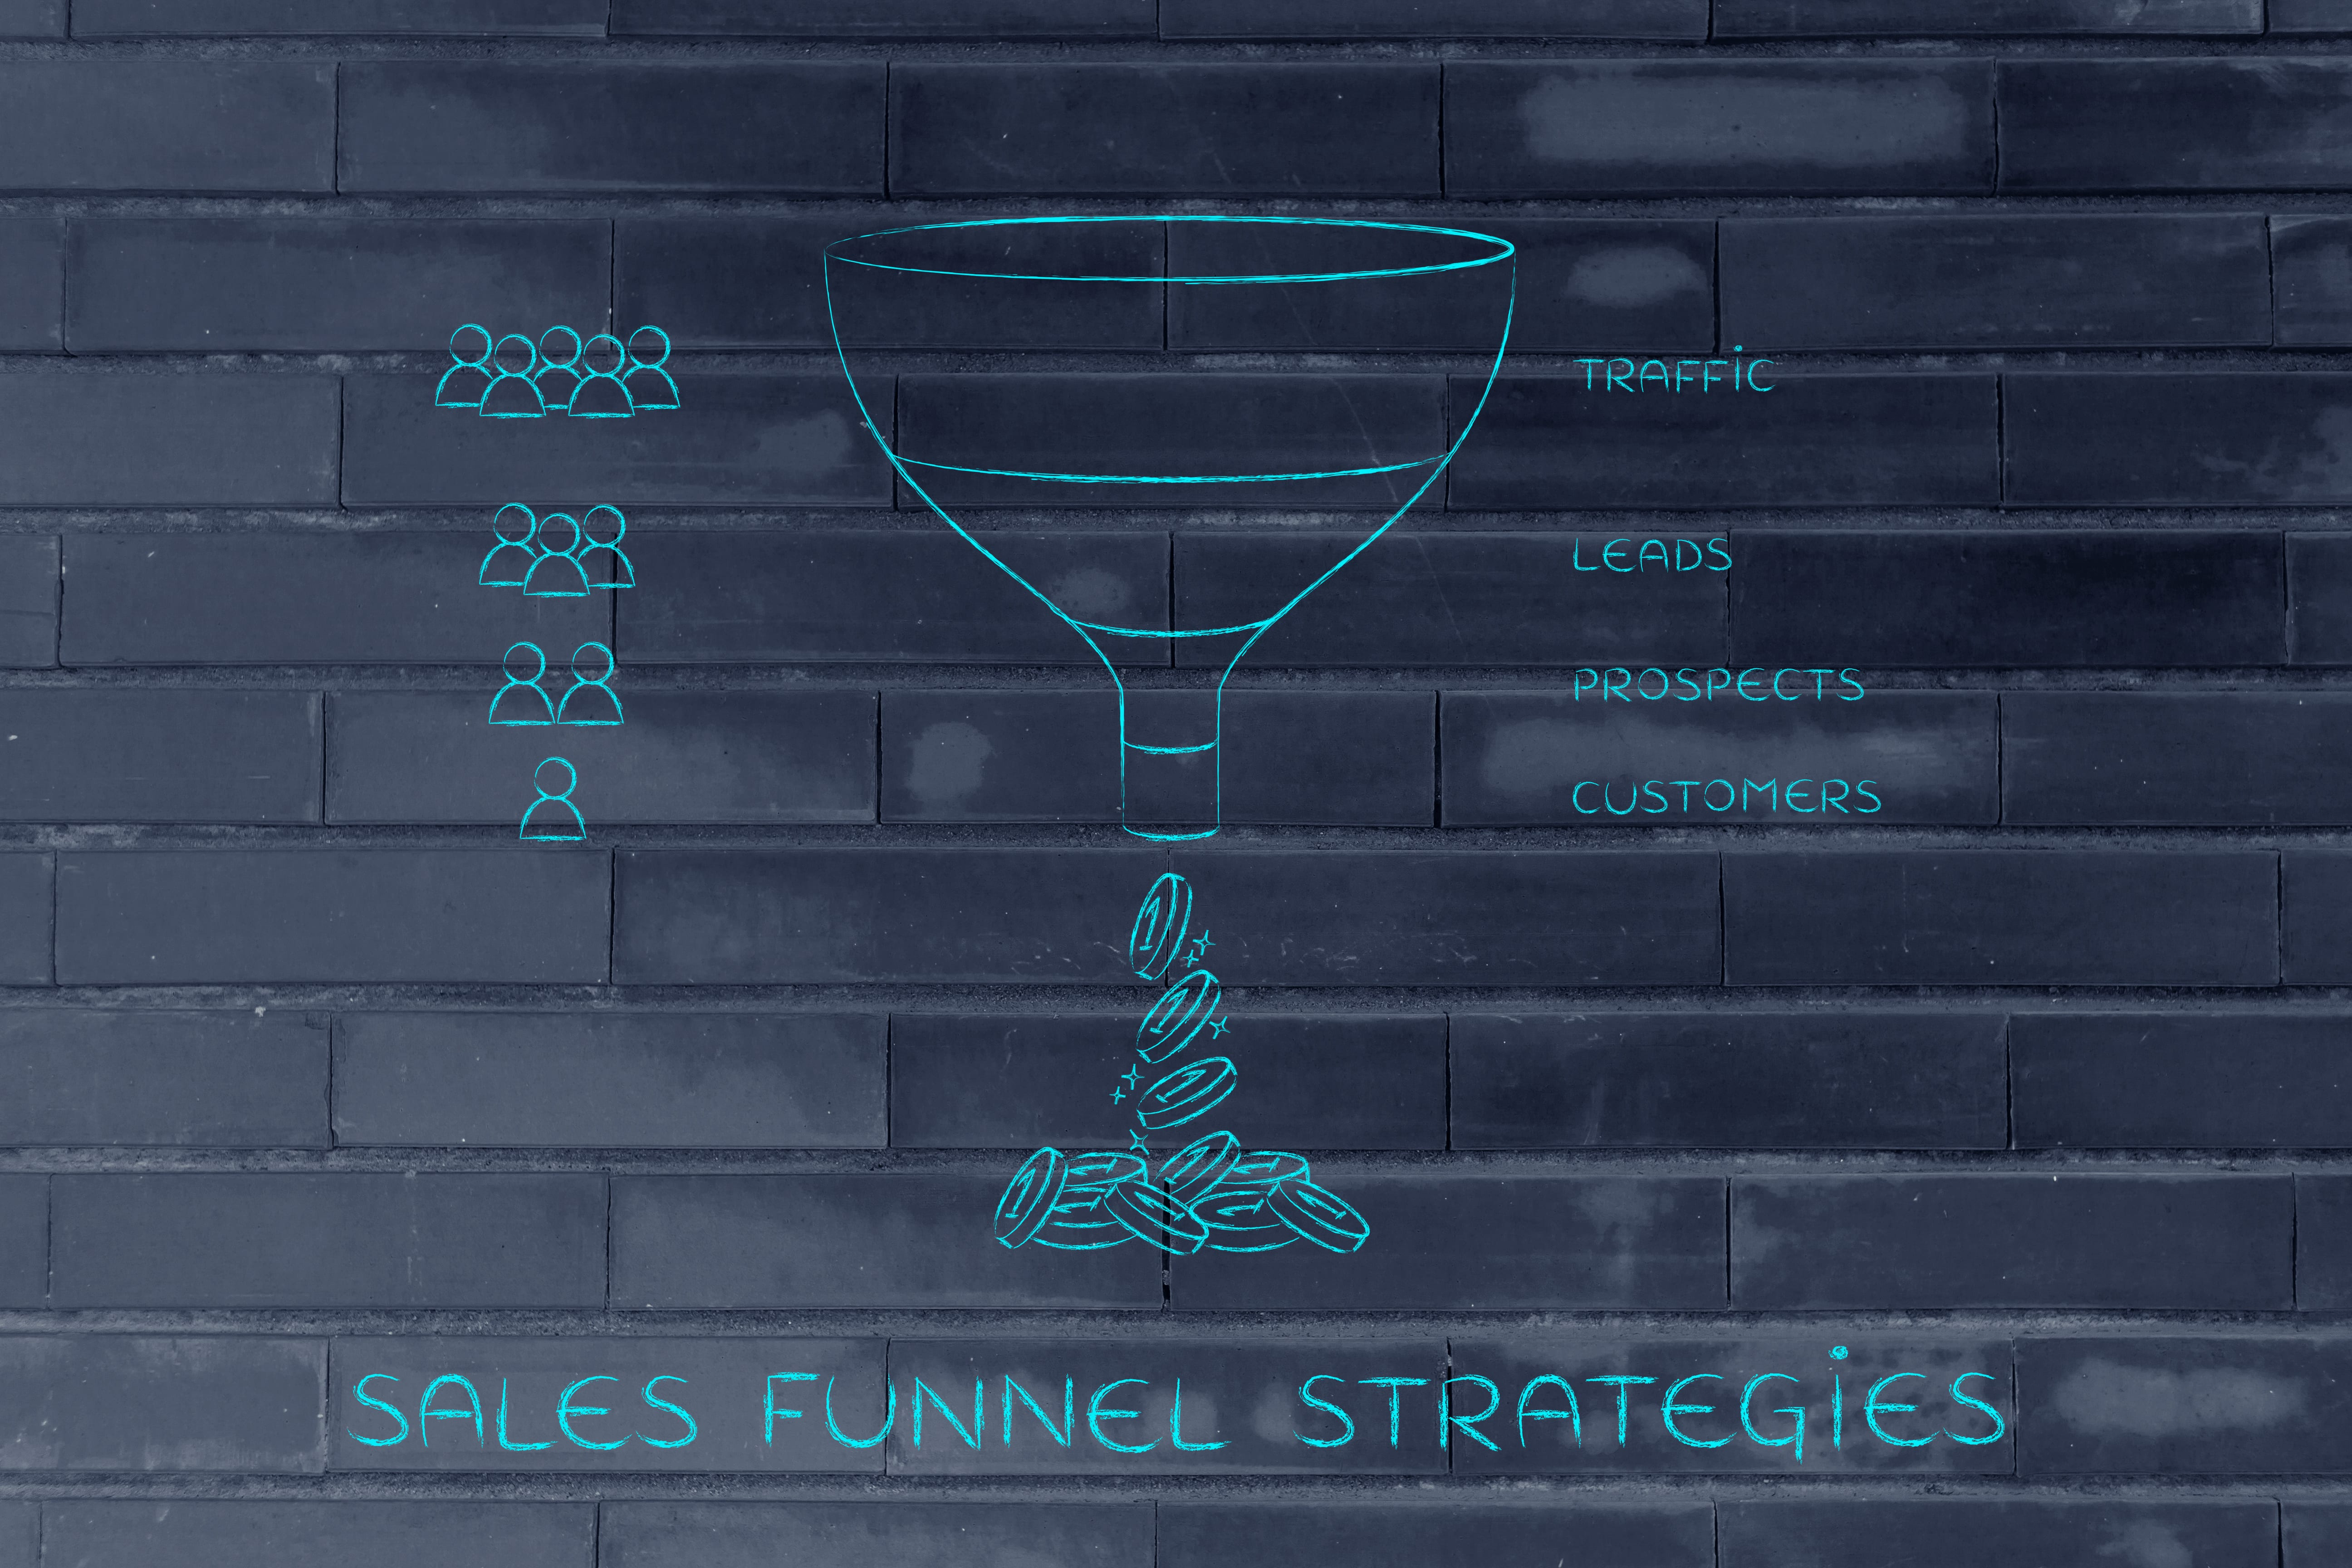 Sales funnel strategies, Traffic Leads Prospects Customers